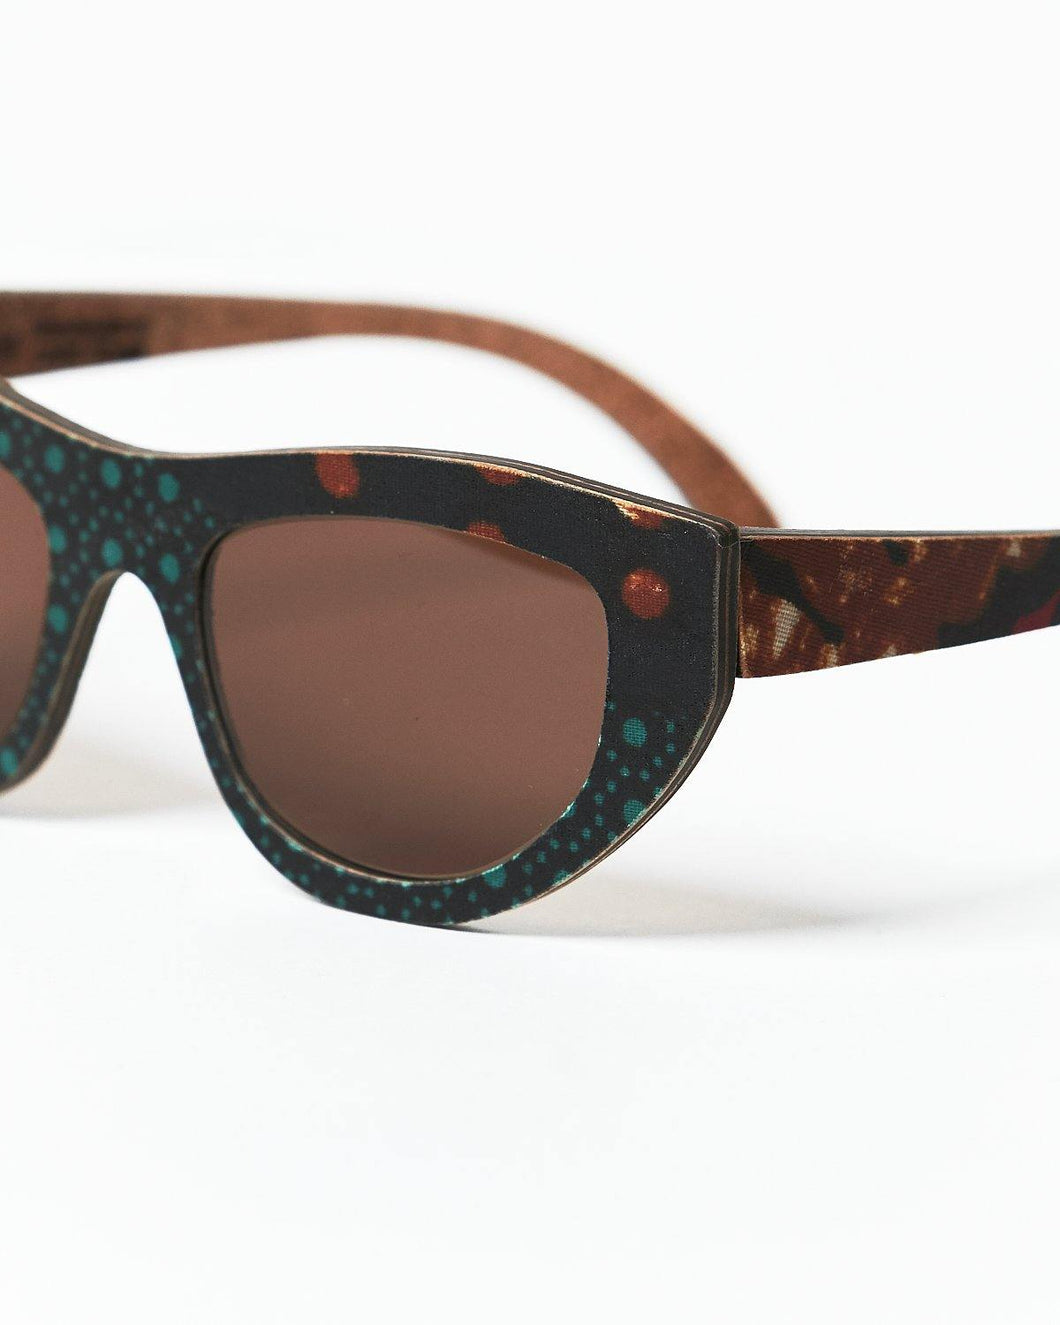 BALLO COSMO Sunglasses in Brown African Fabric - Hadeda Limited